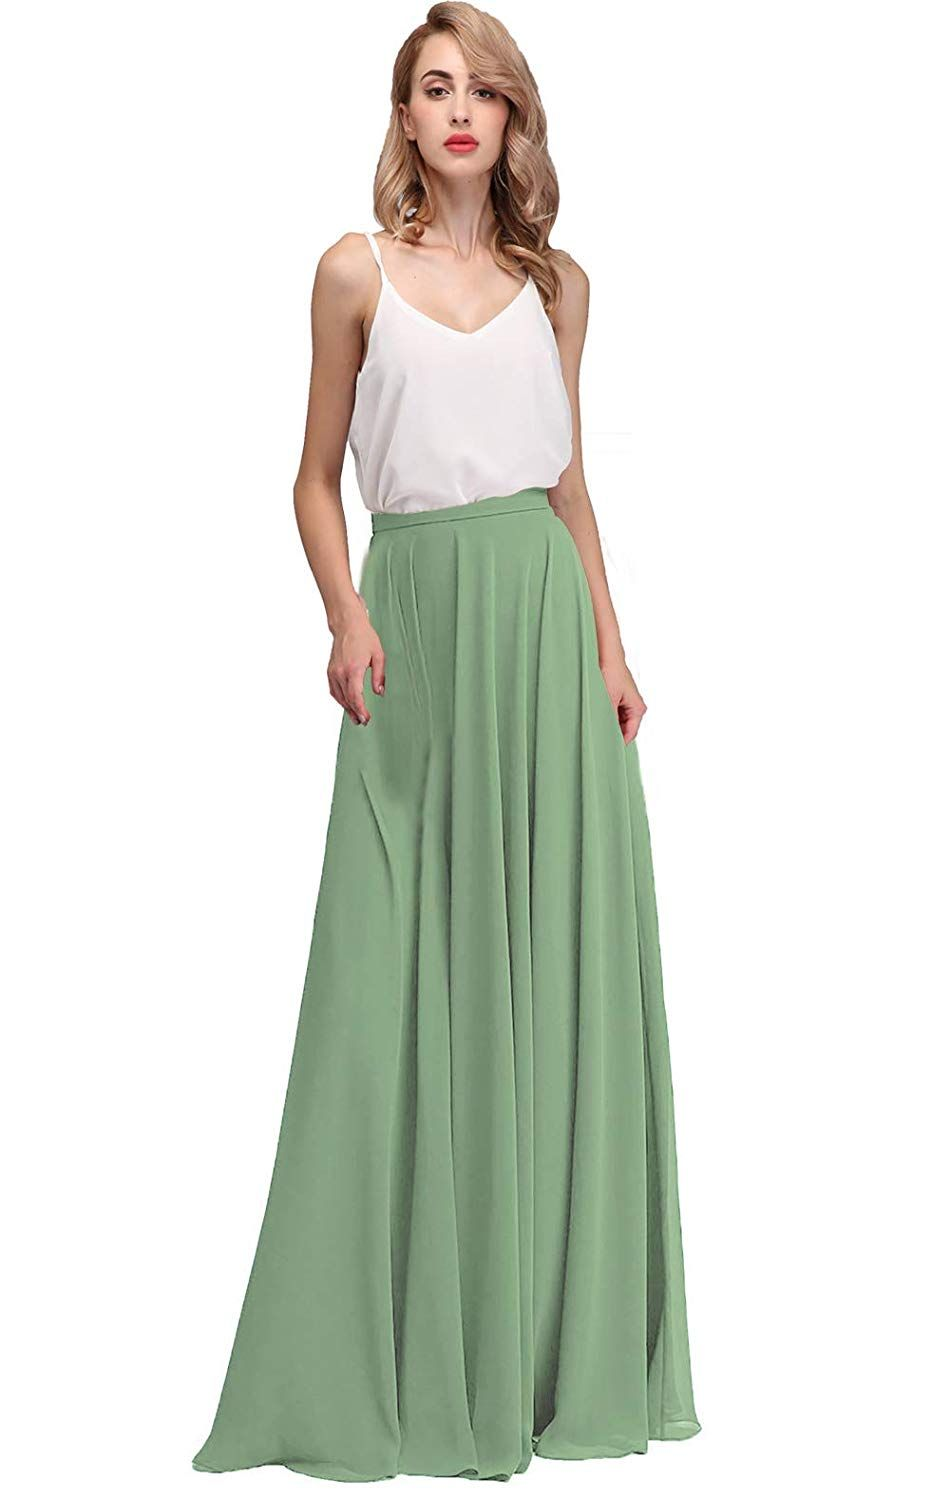 28055ea3a6 Honey Qiao Chiffon Maxi Skirt Bridesmaid Dresses Long High Waist  Floor/Ankle Length Woman Dresses with Belt at Amazon Women's Clothing store: